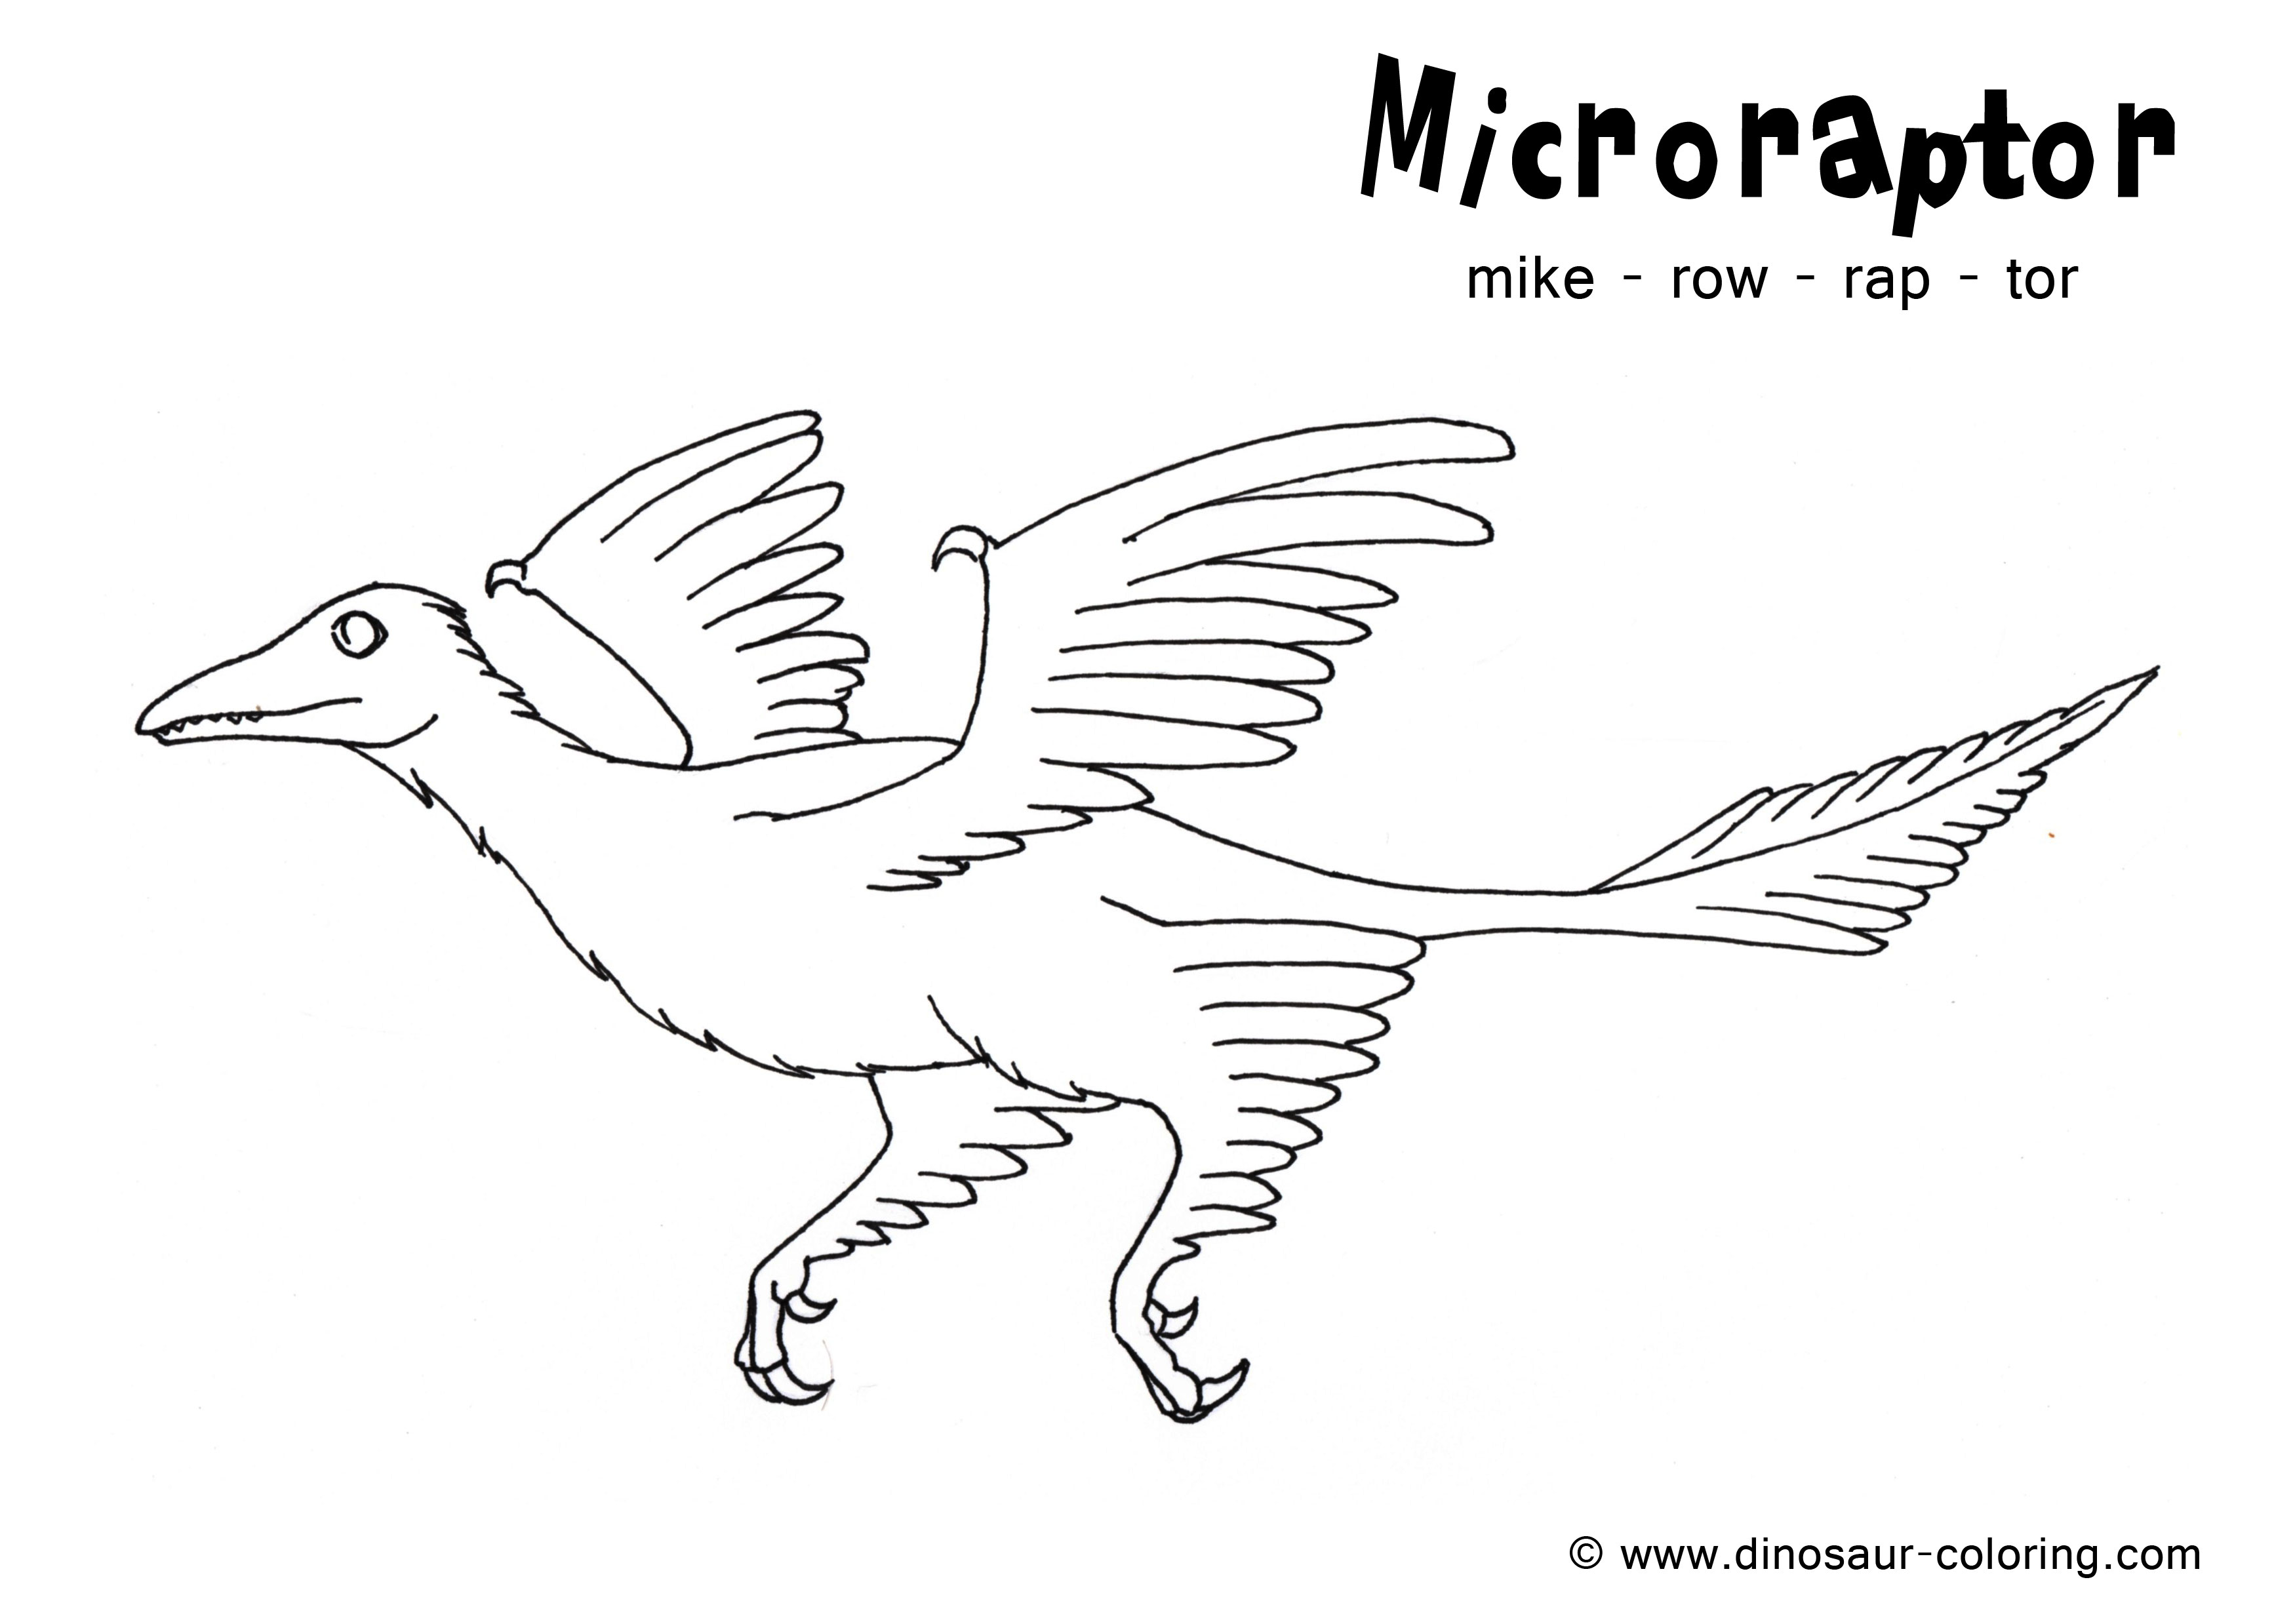 Microraptor Coloring Sheet Dinosaurs Pictures And Facts